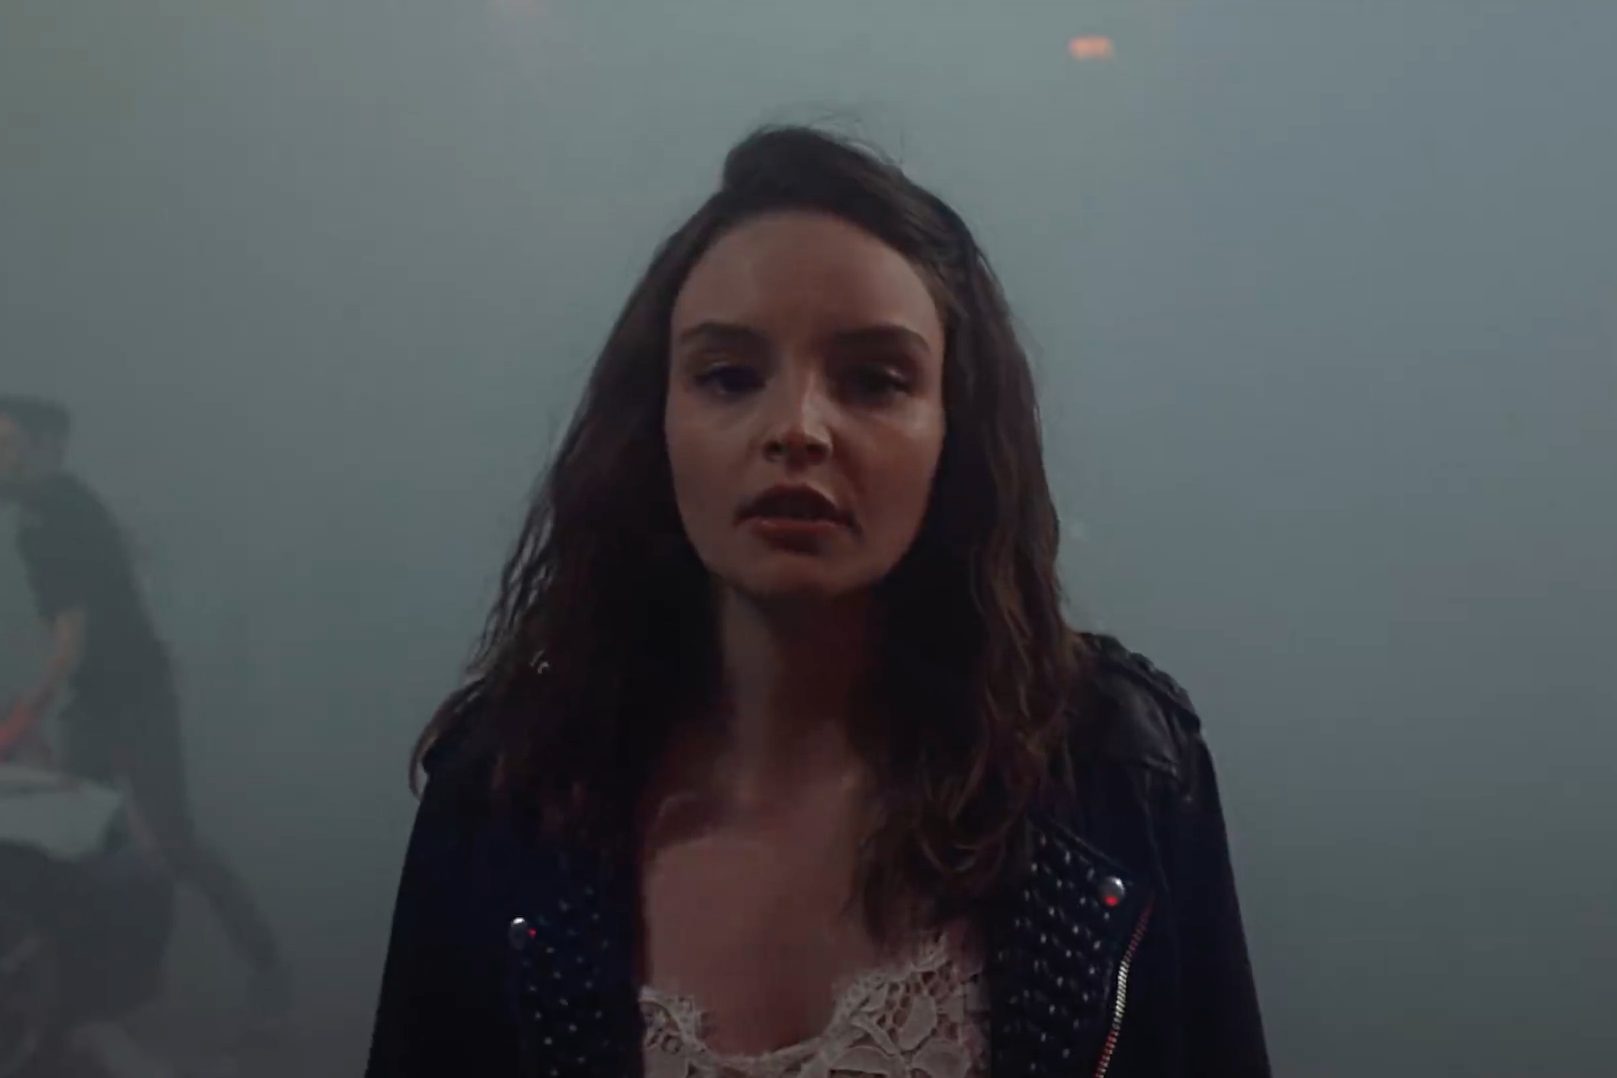 chvrches-miracle-video-1524665851